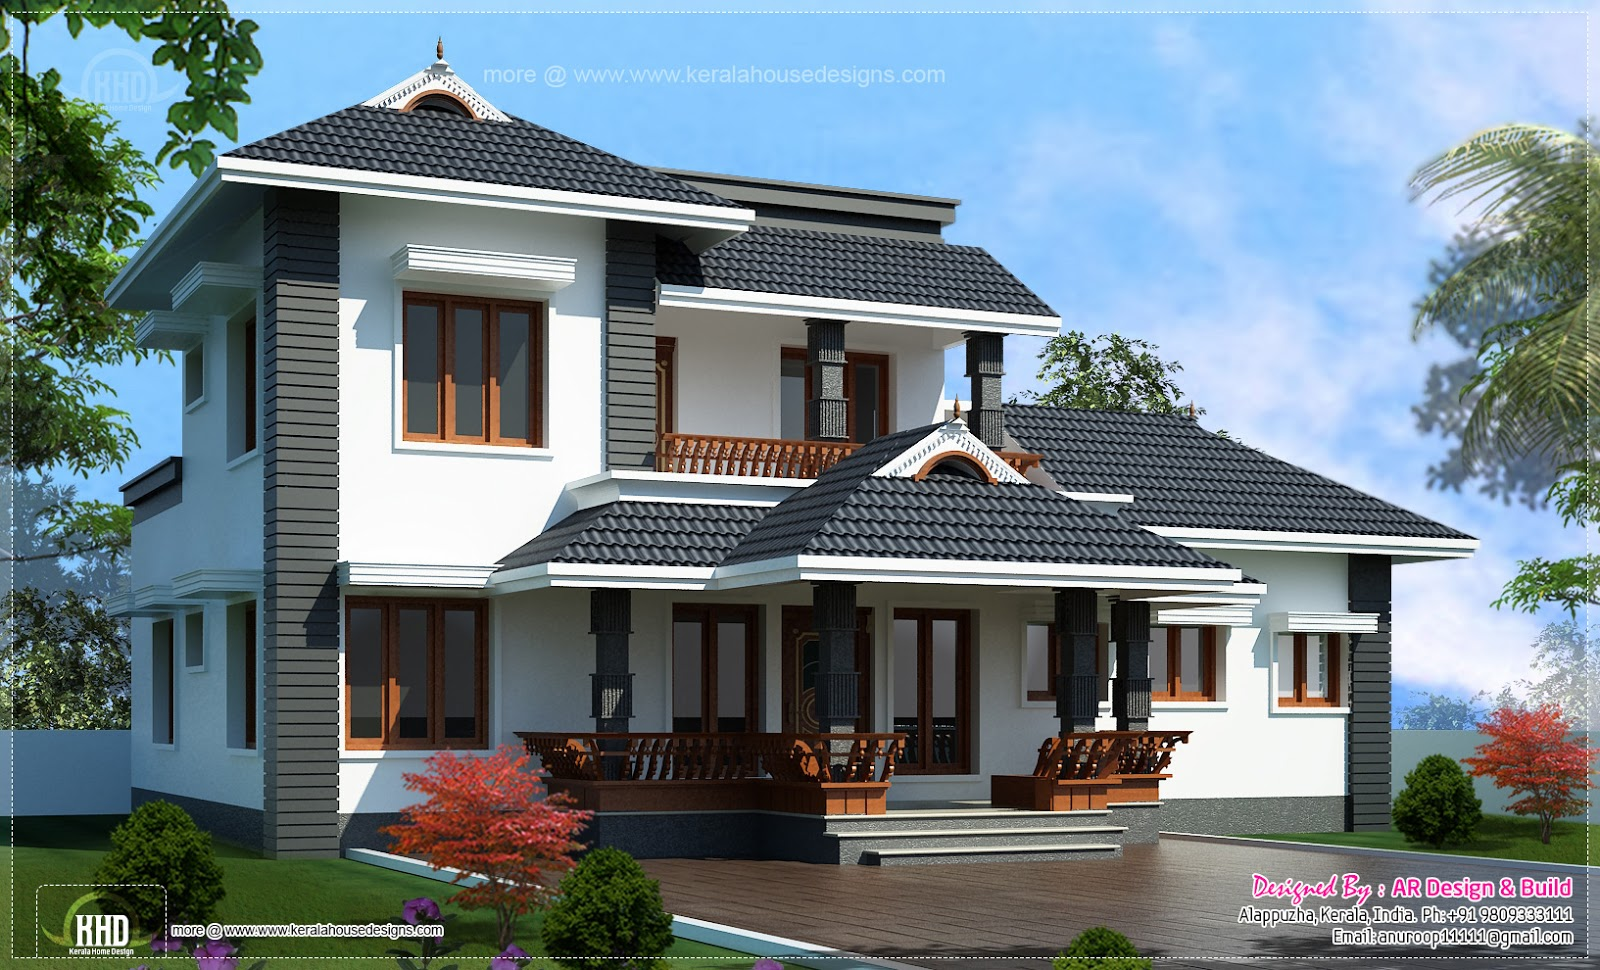 2000 4 bedroom sloping roof residence kerala House designs 2000 square feet